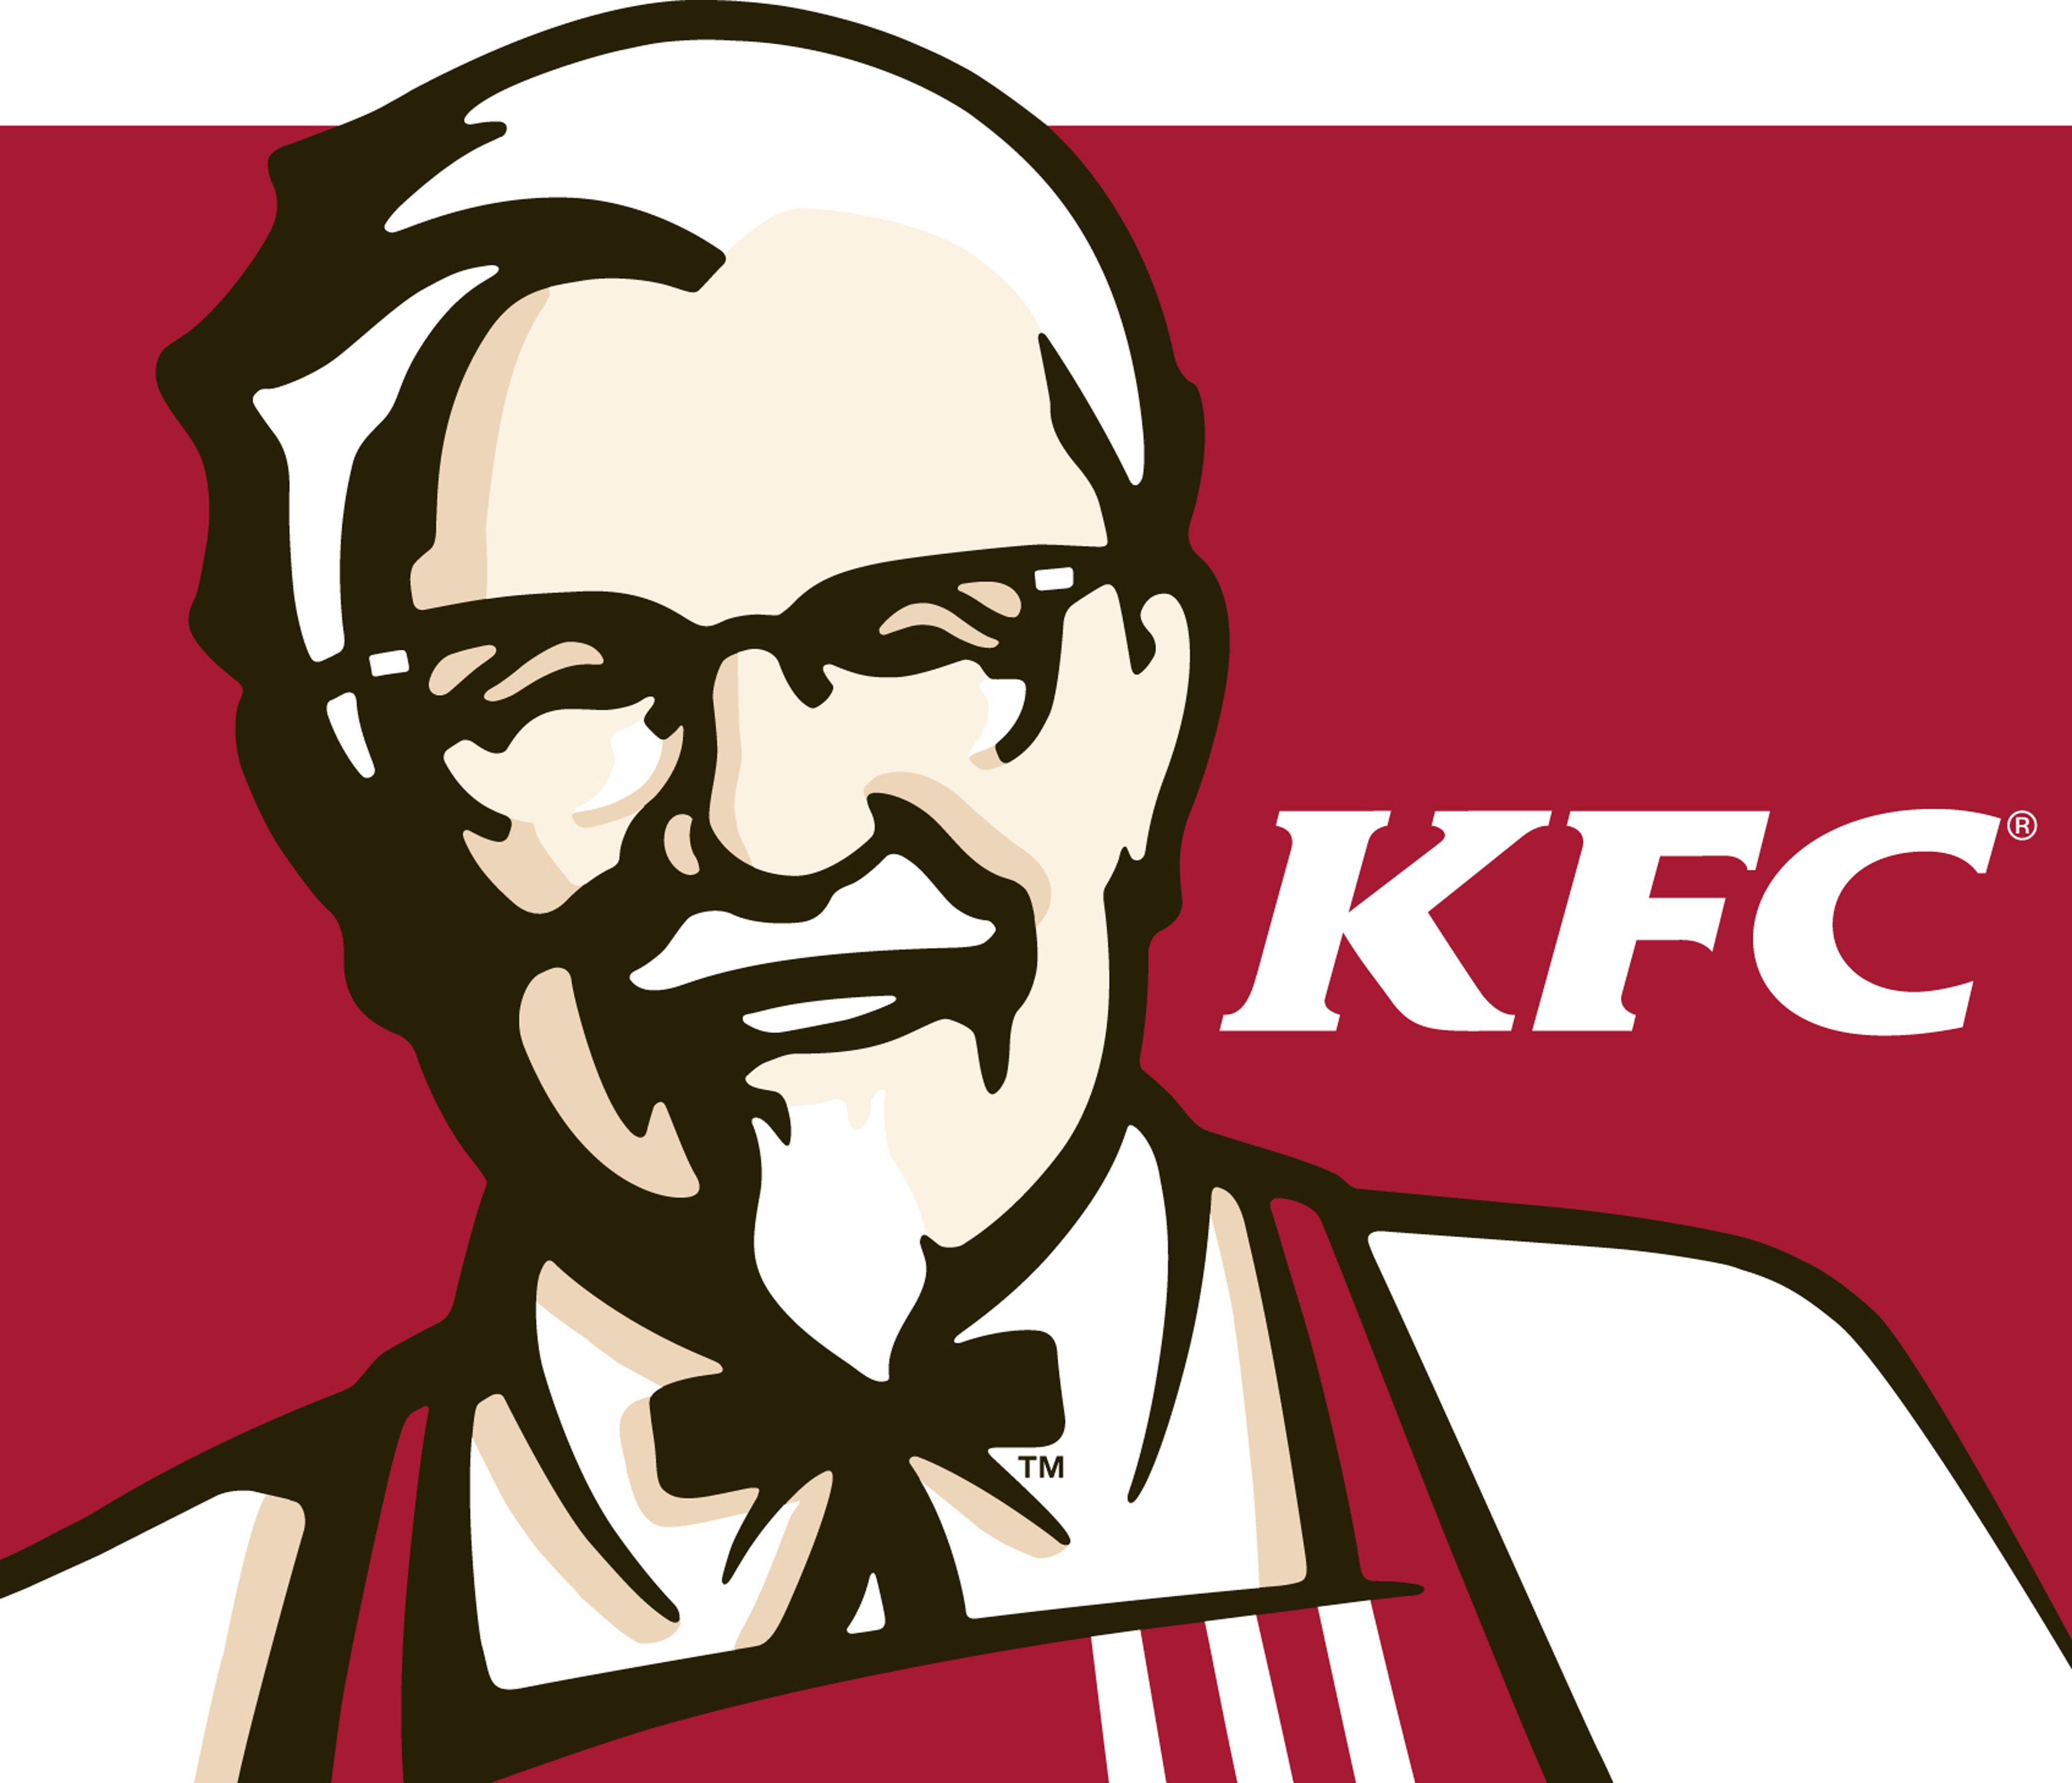 Kfc Logos Pinterest Chicken And Fried Lotteria Voucher Menu Crispy Rice Set Fast Food Logo Coupons Google